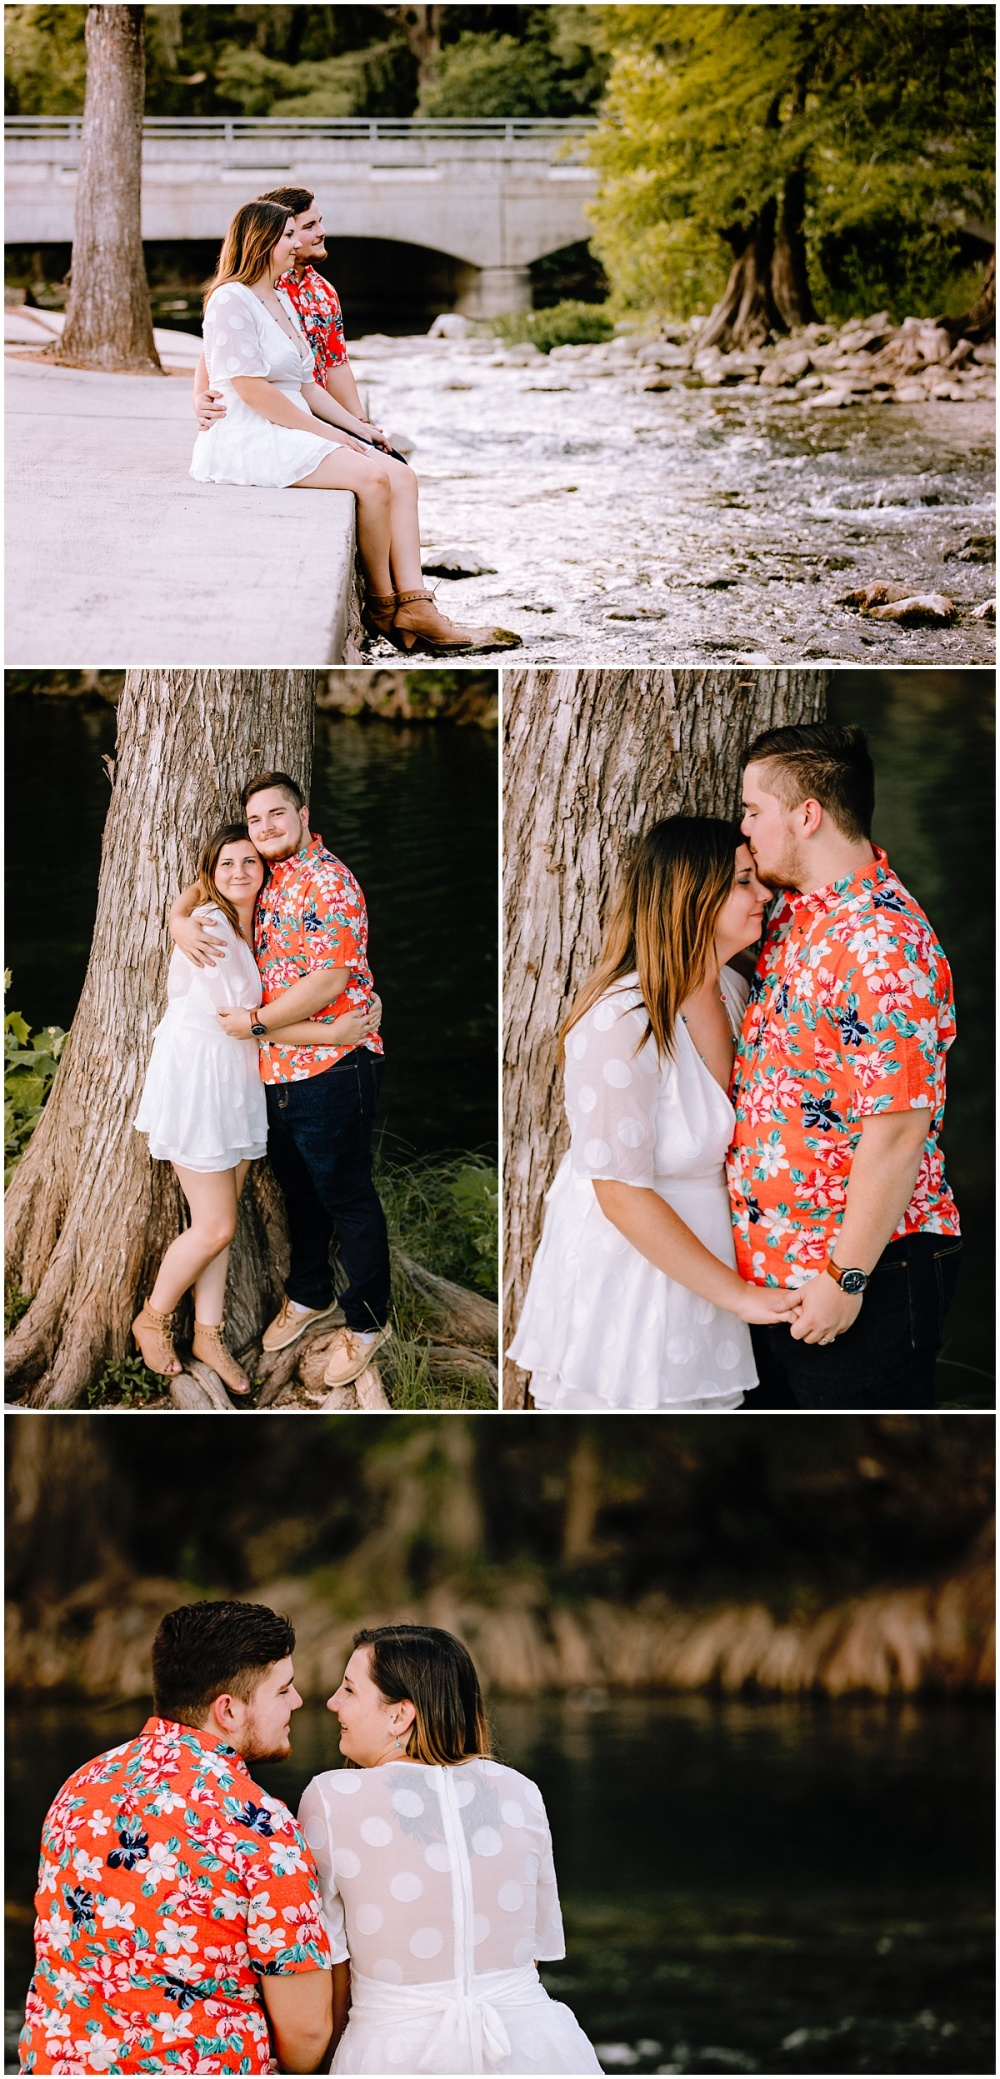 Engagement-Portraits-Couples-New-Braunels-Downtown-Carly-Barton-Photography-Wedding-Photographer-Gruene-Texas_0013.jpg